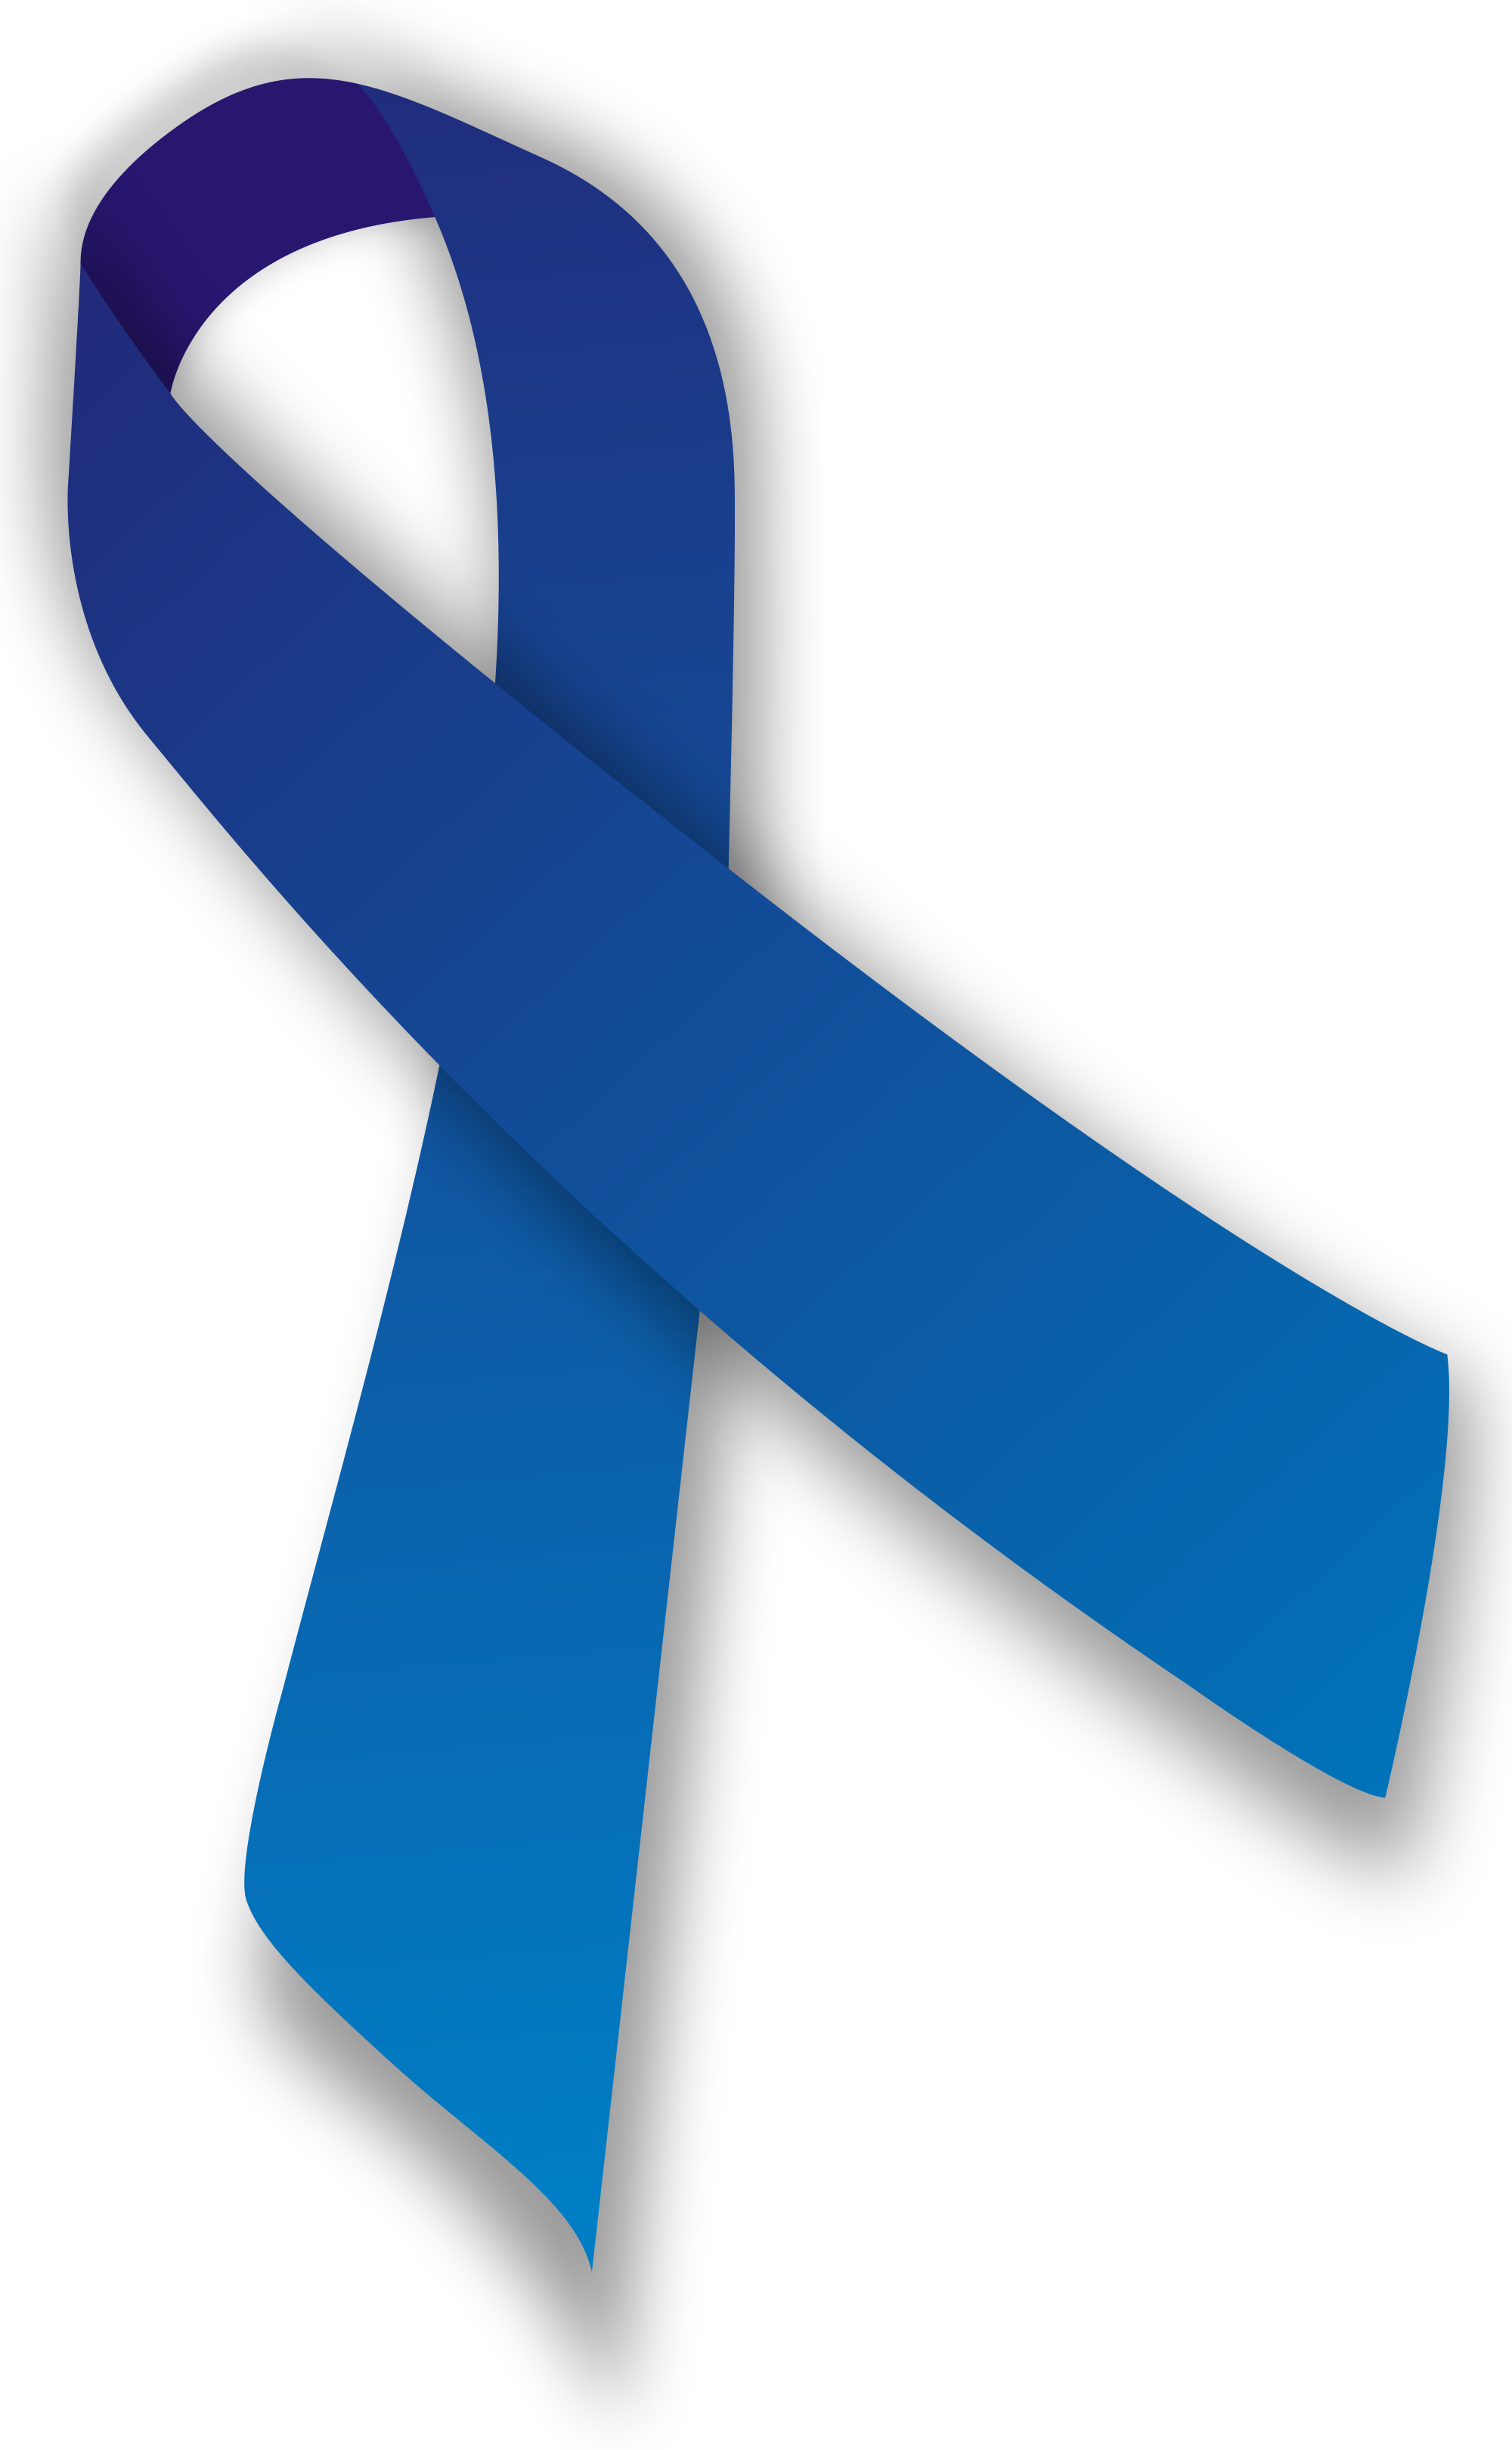 Praying hands in the sky with a cross and ribbon clipart banner free library The only request for this month! Re-pin the blue ribbon, symbol for ... banner free library